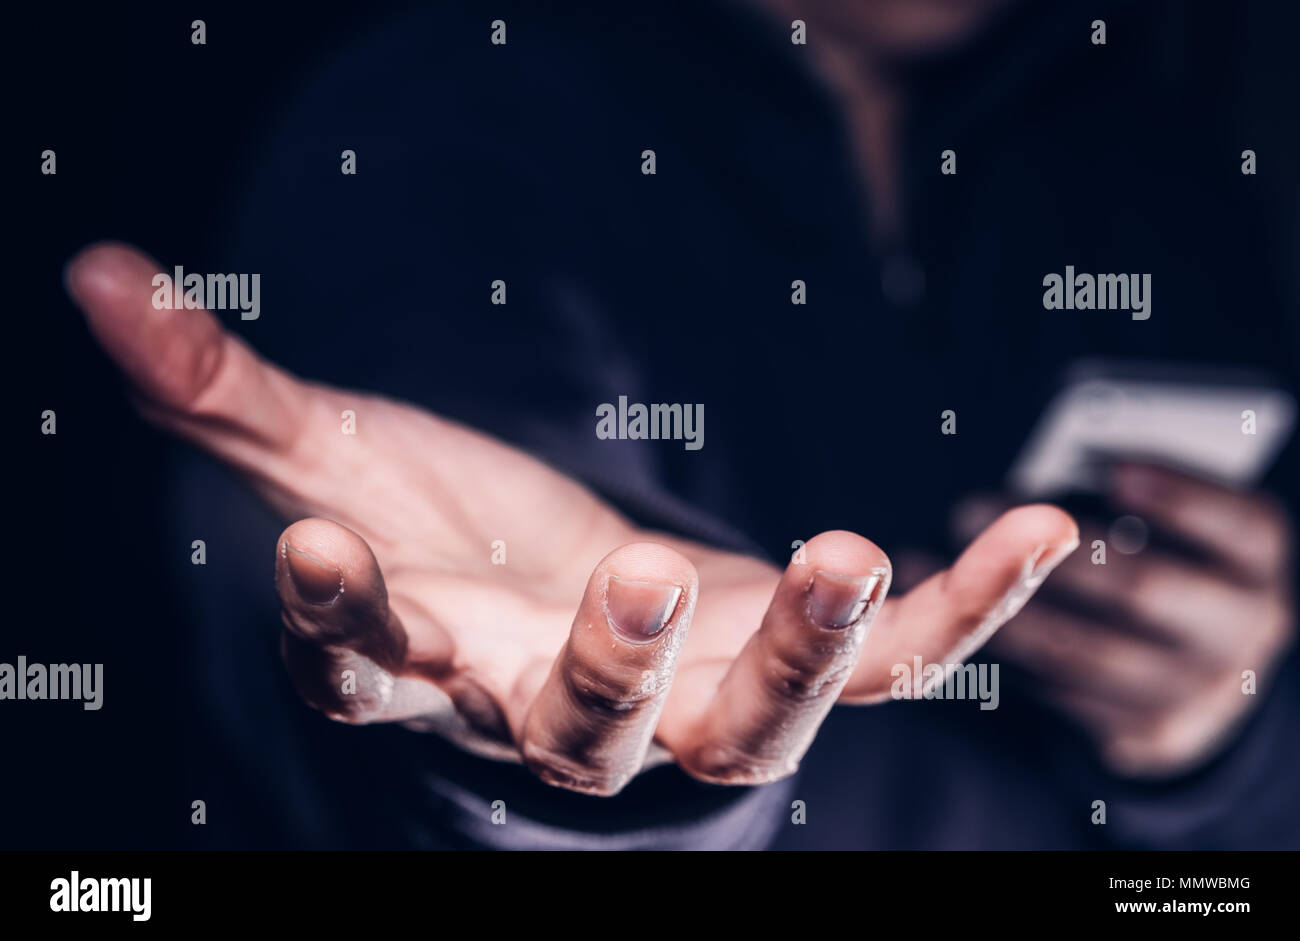 Hooded cyber crime hacker using mobile phone internet hacking in to cyberspace,online personal data security concept. - Stock Image